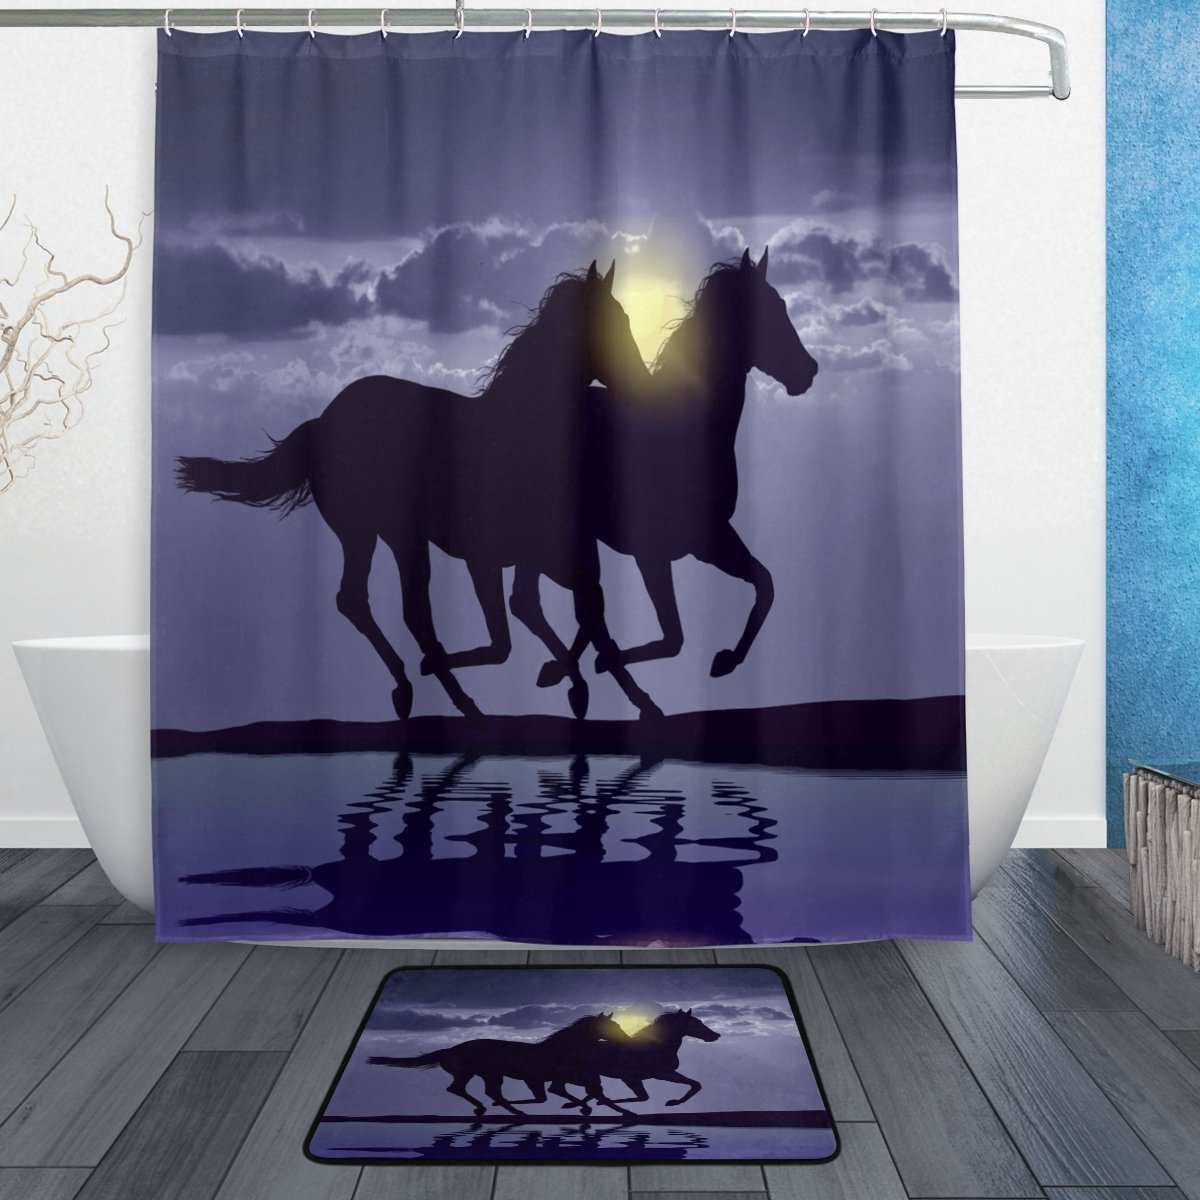 Horse Running at Sunset Waterproof Polyester Fabric Shower Curtain with Hooks Doormat Bath Floor Mat Bathroom Home Decor